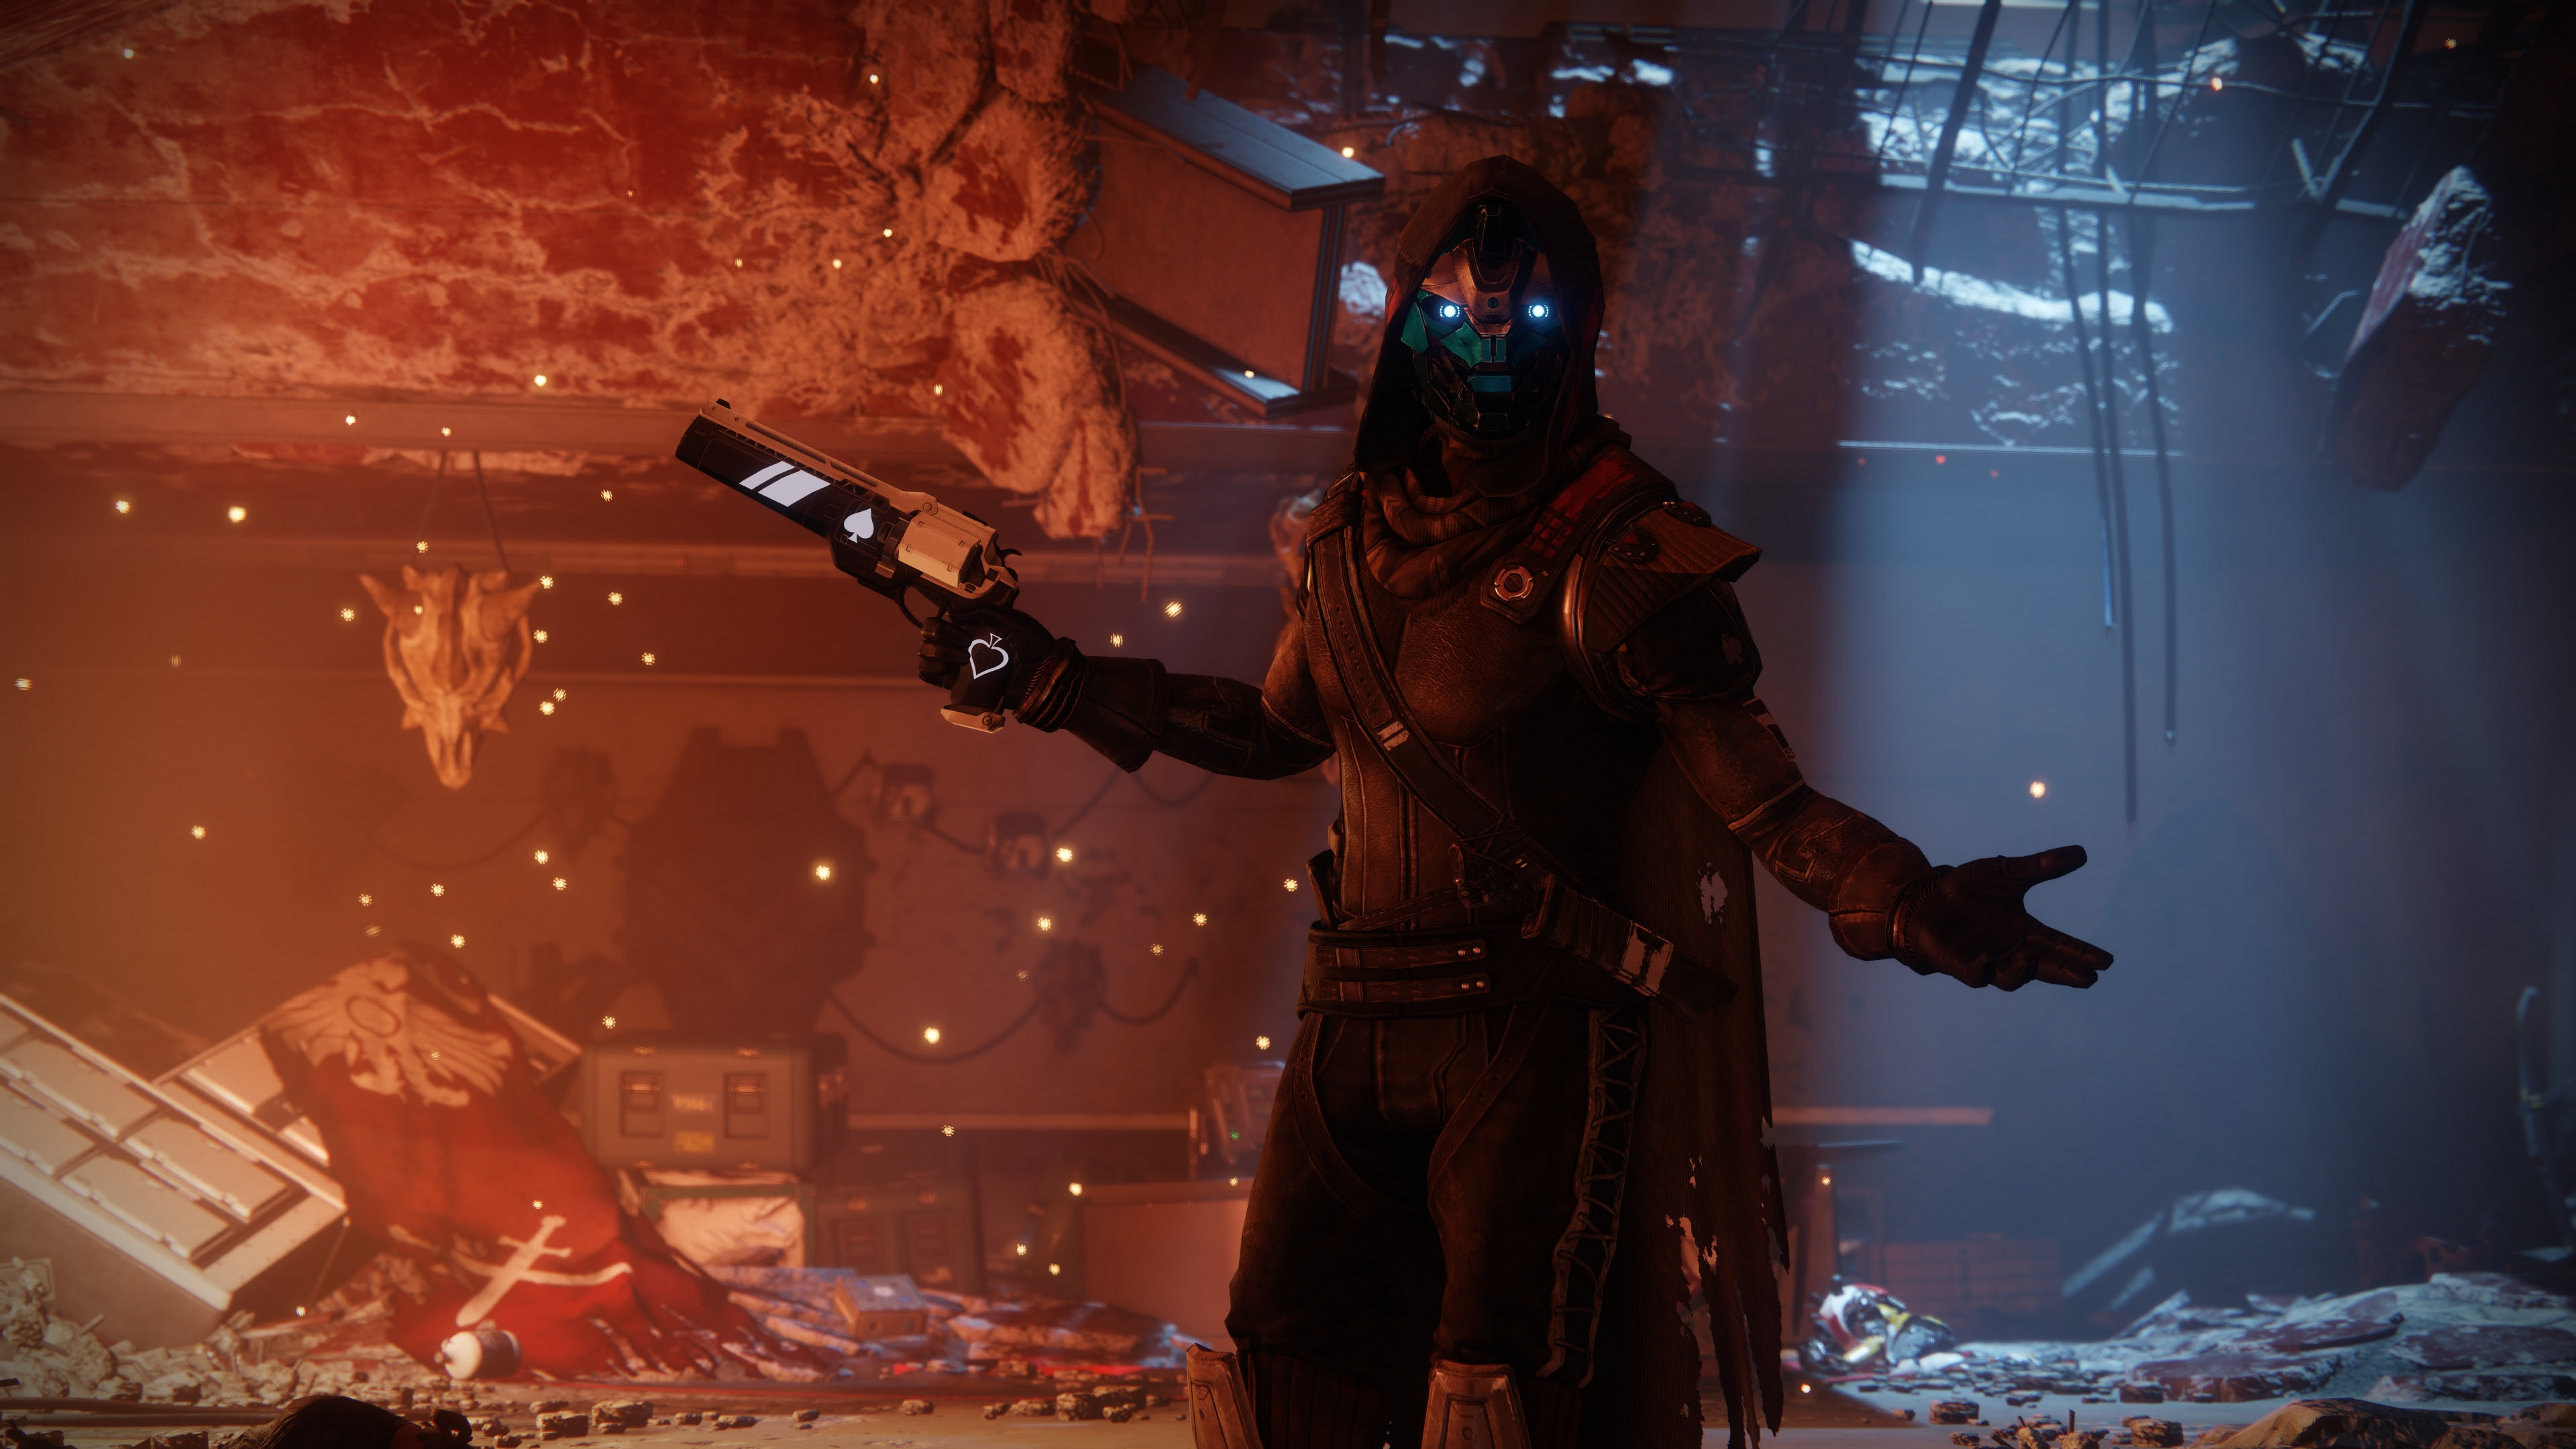 You can now link your Blizzard account with Destiny 2 screenshot